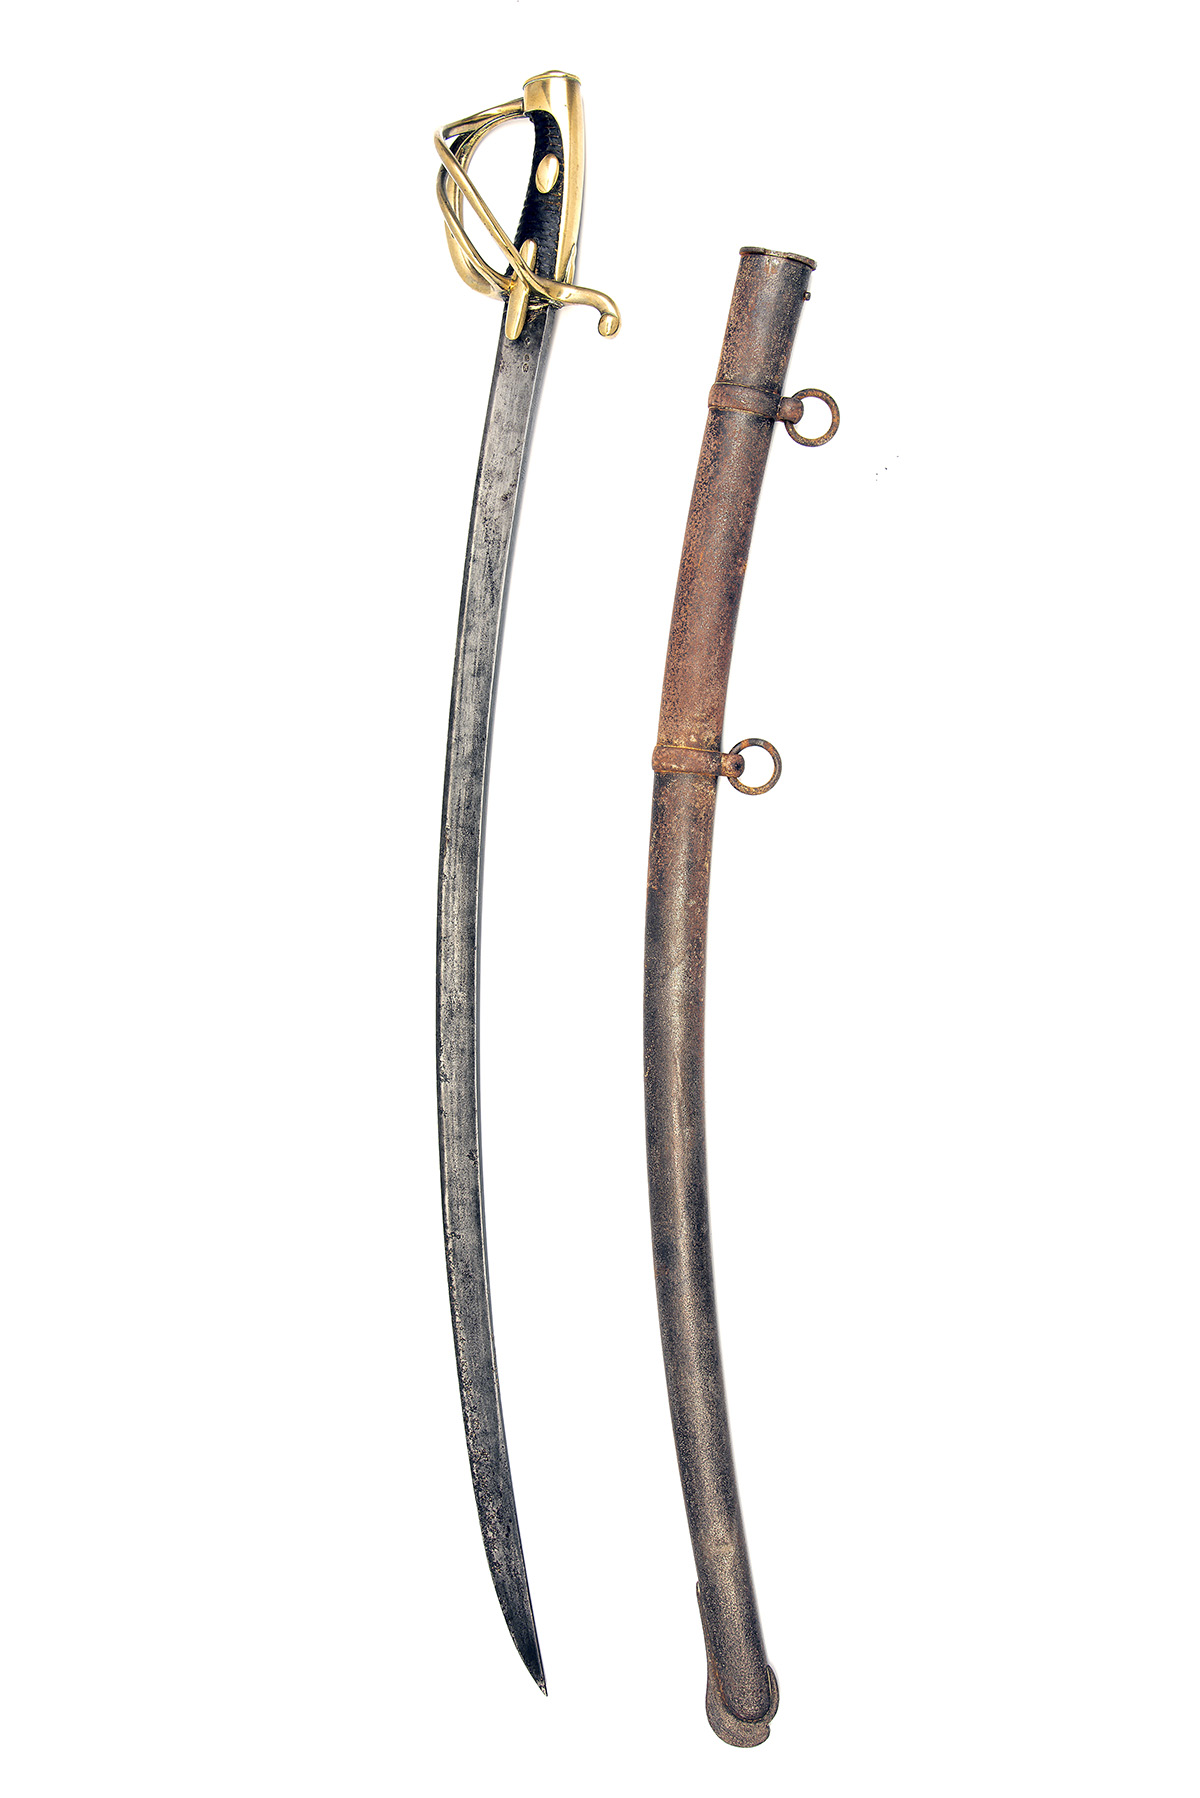 A NAPOLEONIC-ERA FRENCH HUSSAR TROOPER'S SWORD SIGNED KLINGENTHAL, no visible serial number, dated